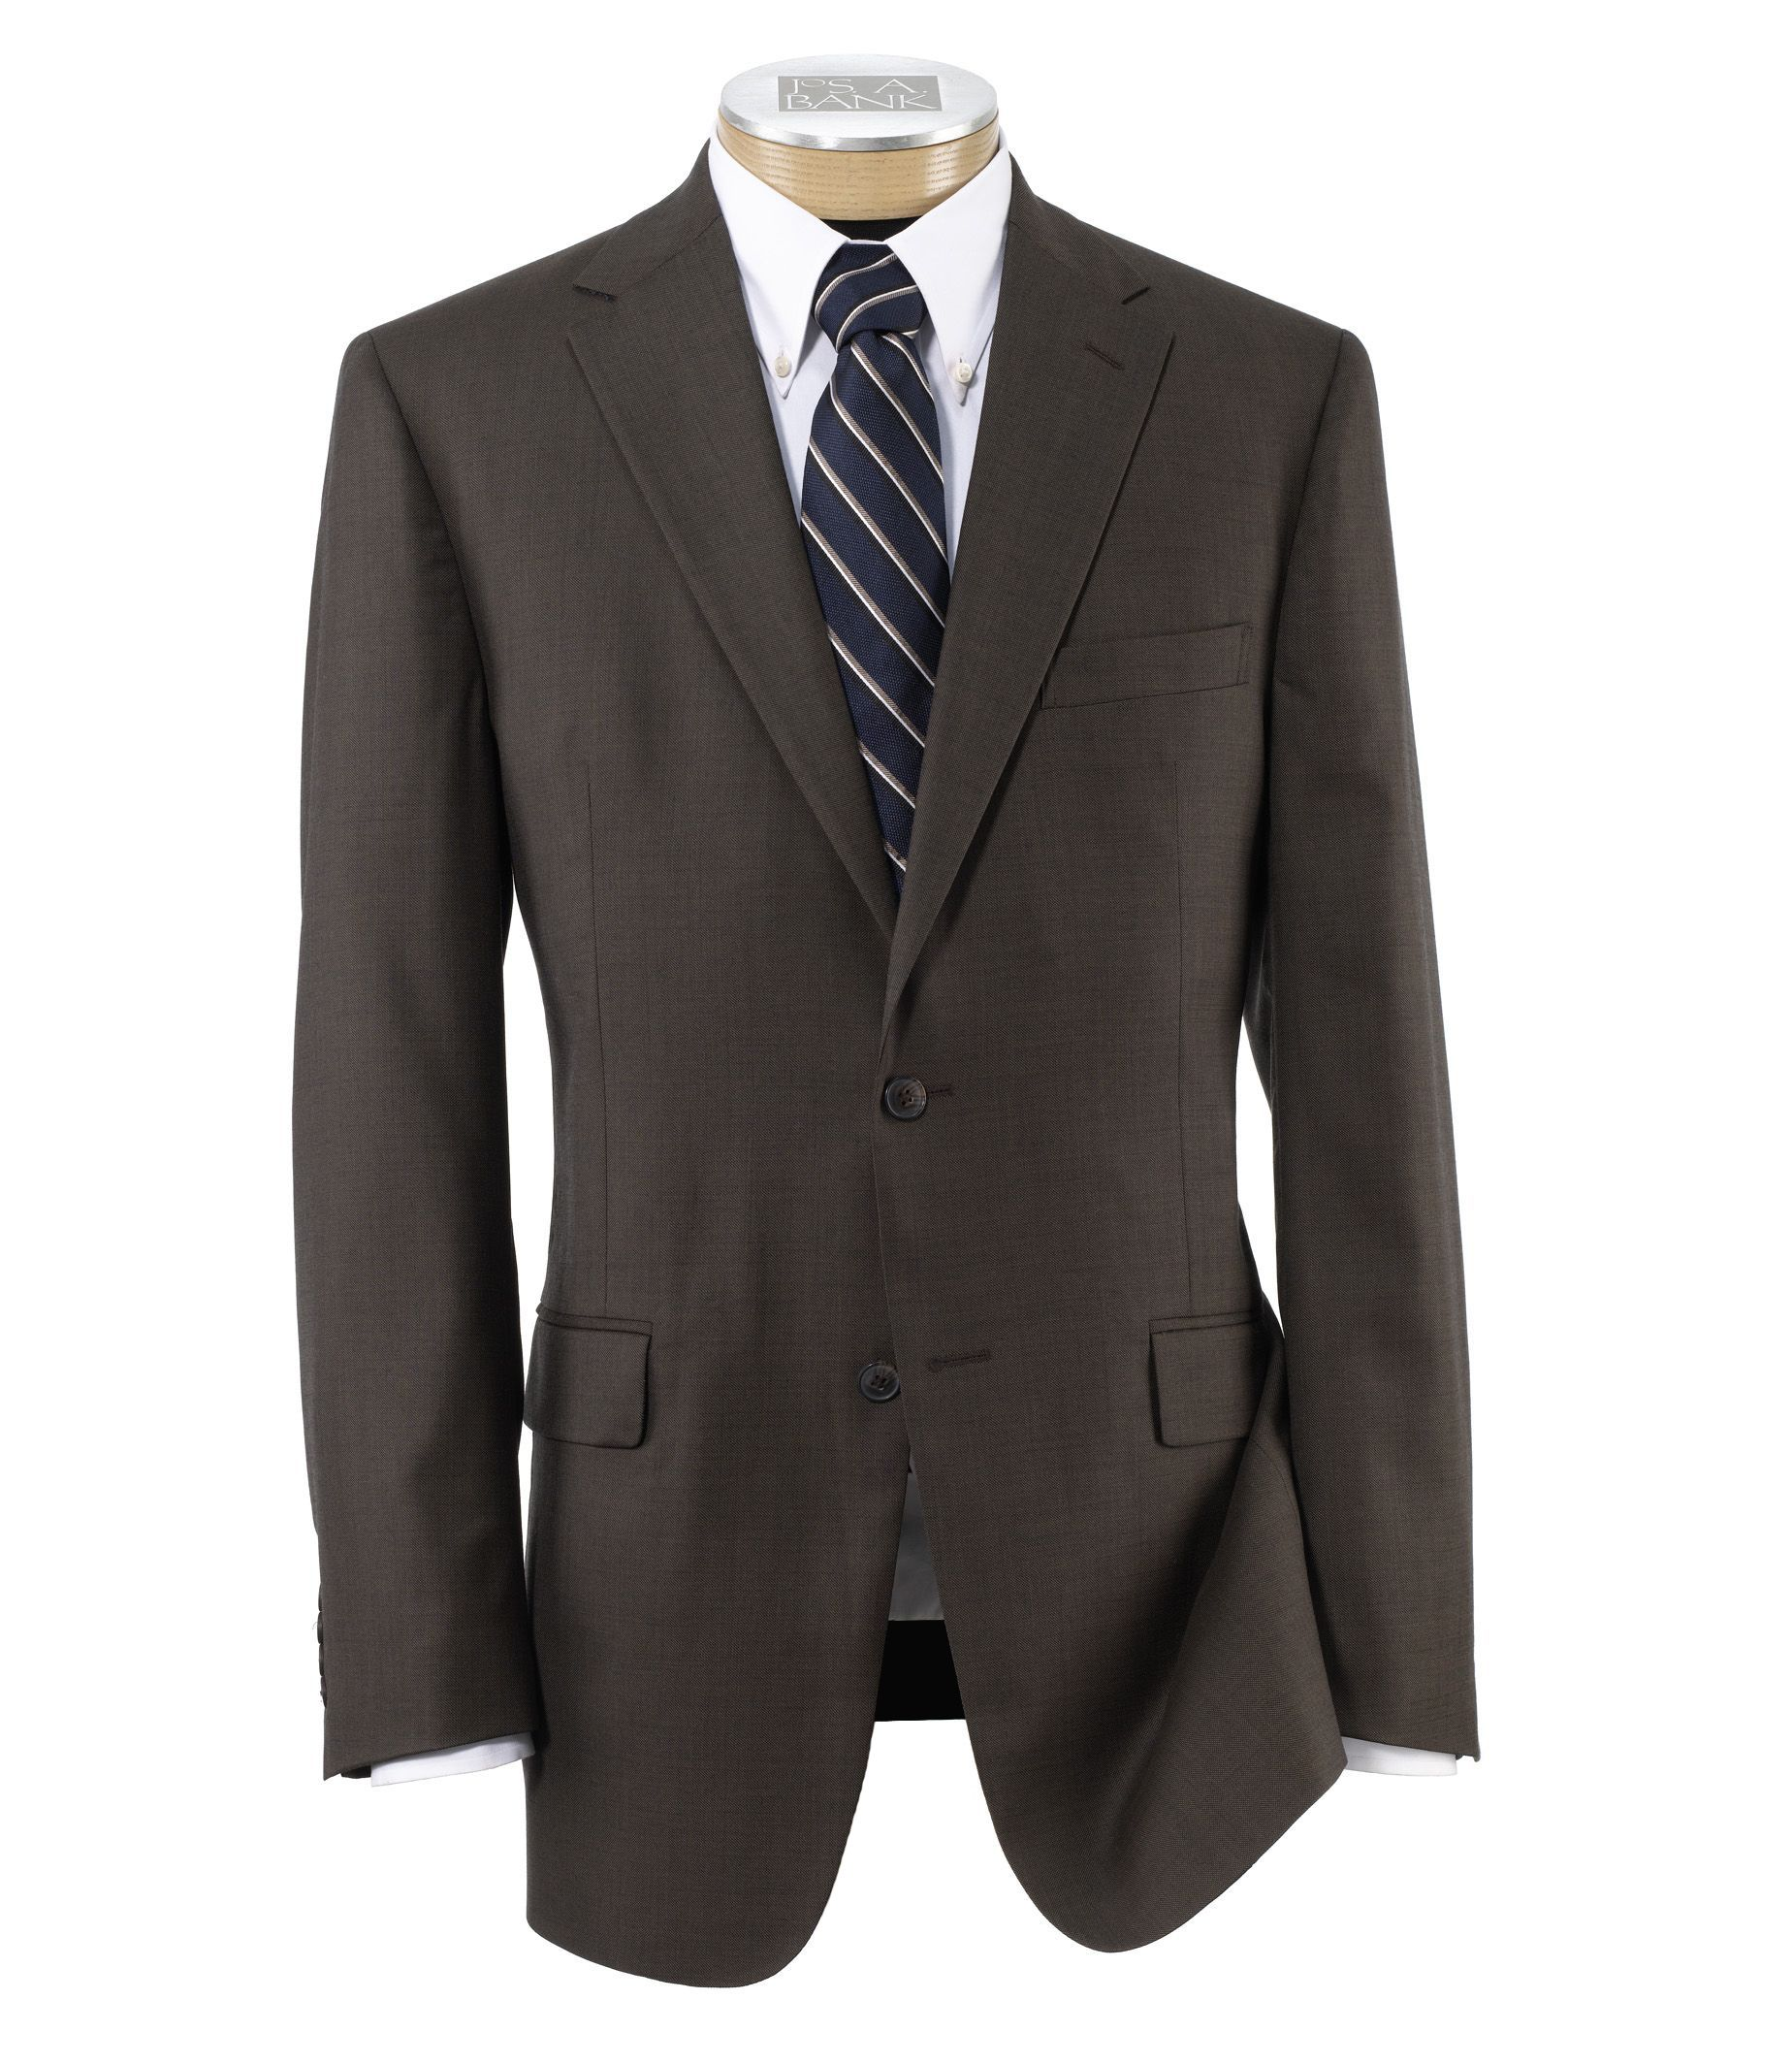 a739bfa9850d Traveler Collection Tailored Fit Sharkskin Suit | Products ...